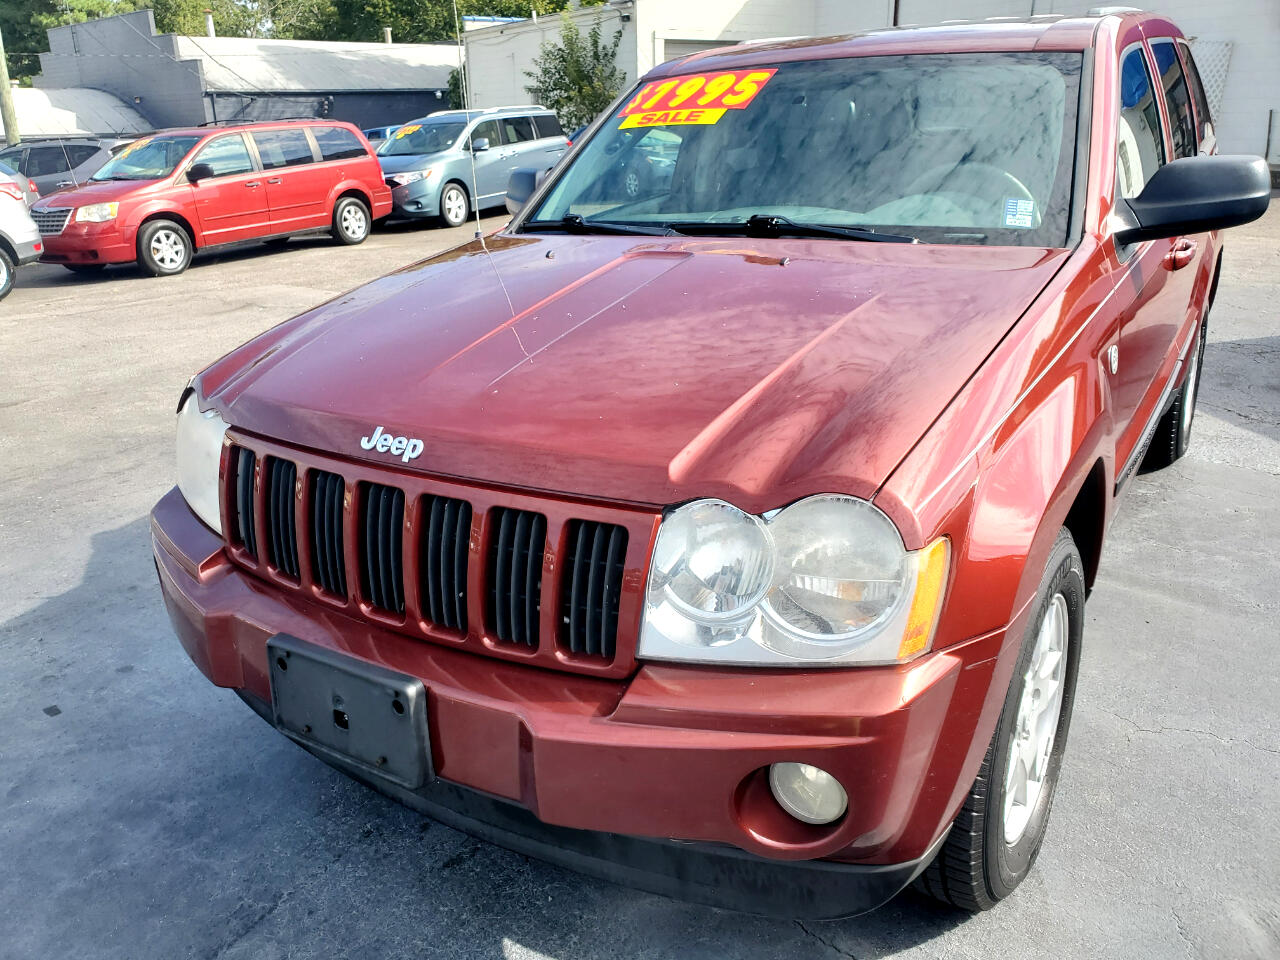 Used 2007 Jeep Grand Cherokee 4wd 4dr Laredo For Sale In Henderson Nc 27536 Auto Mart Of Henderson